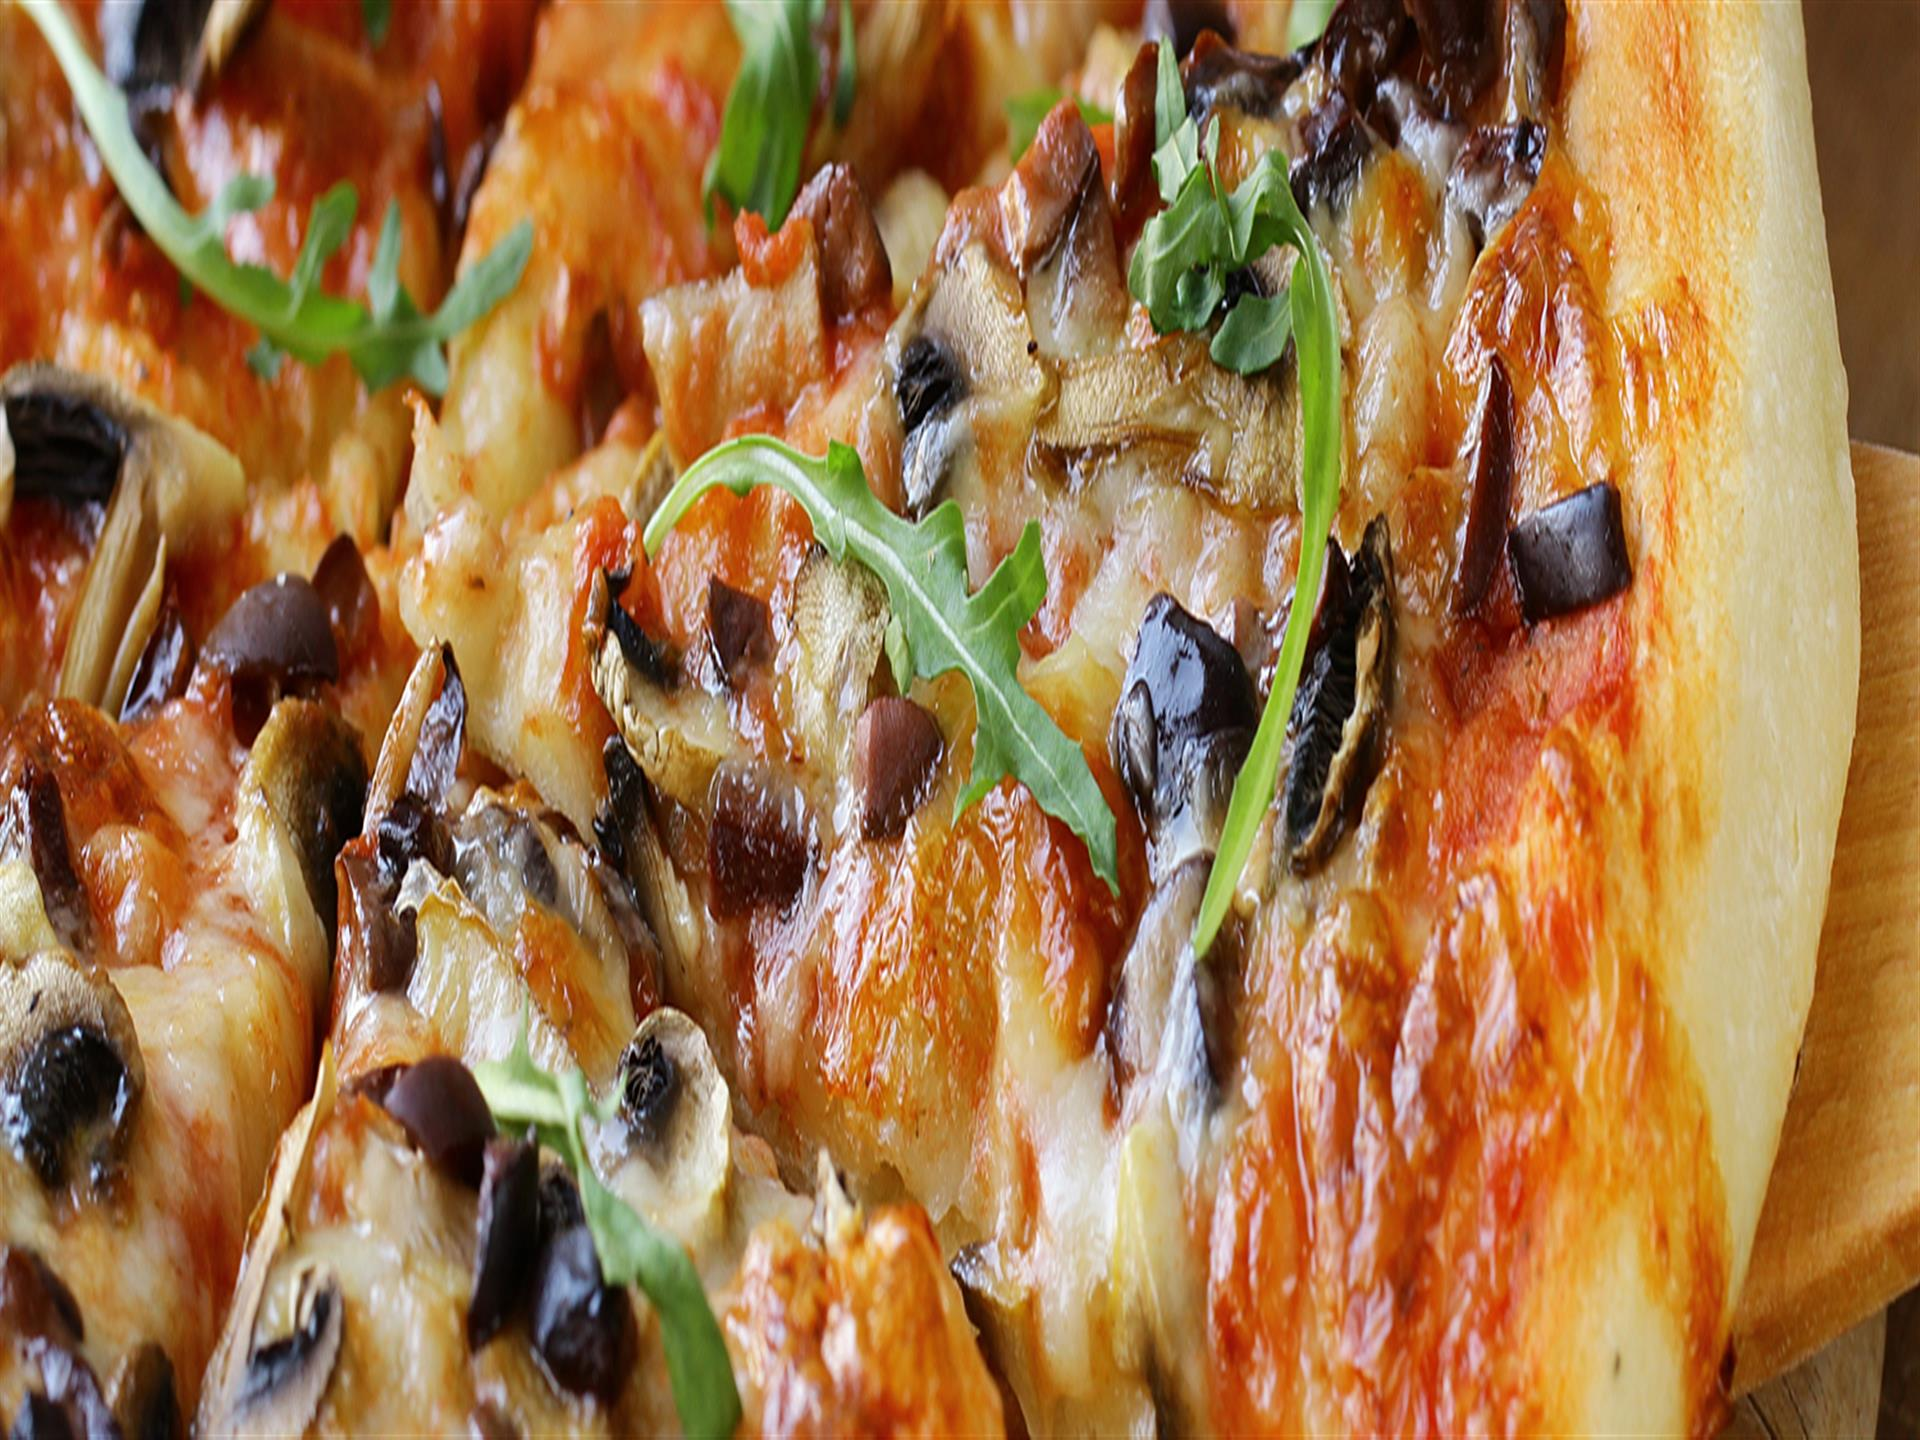 ---- Pizza 2 1500x450 (large)